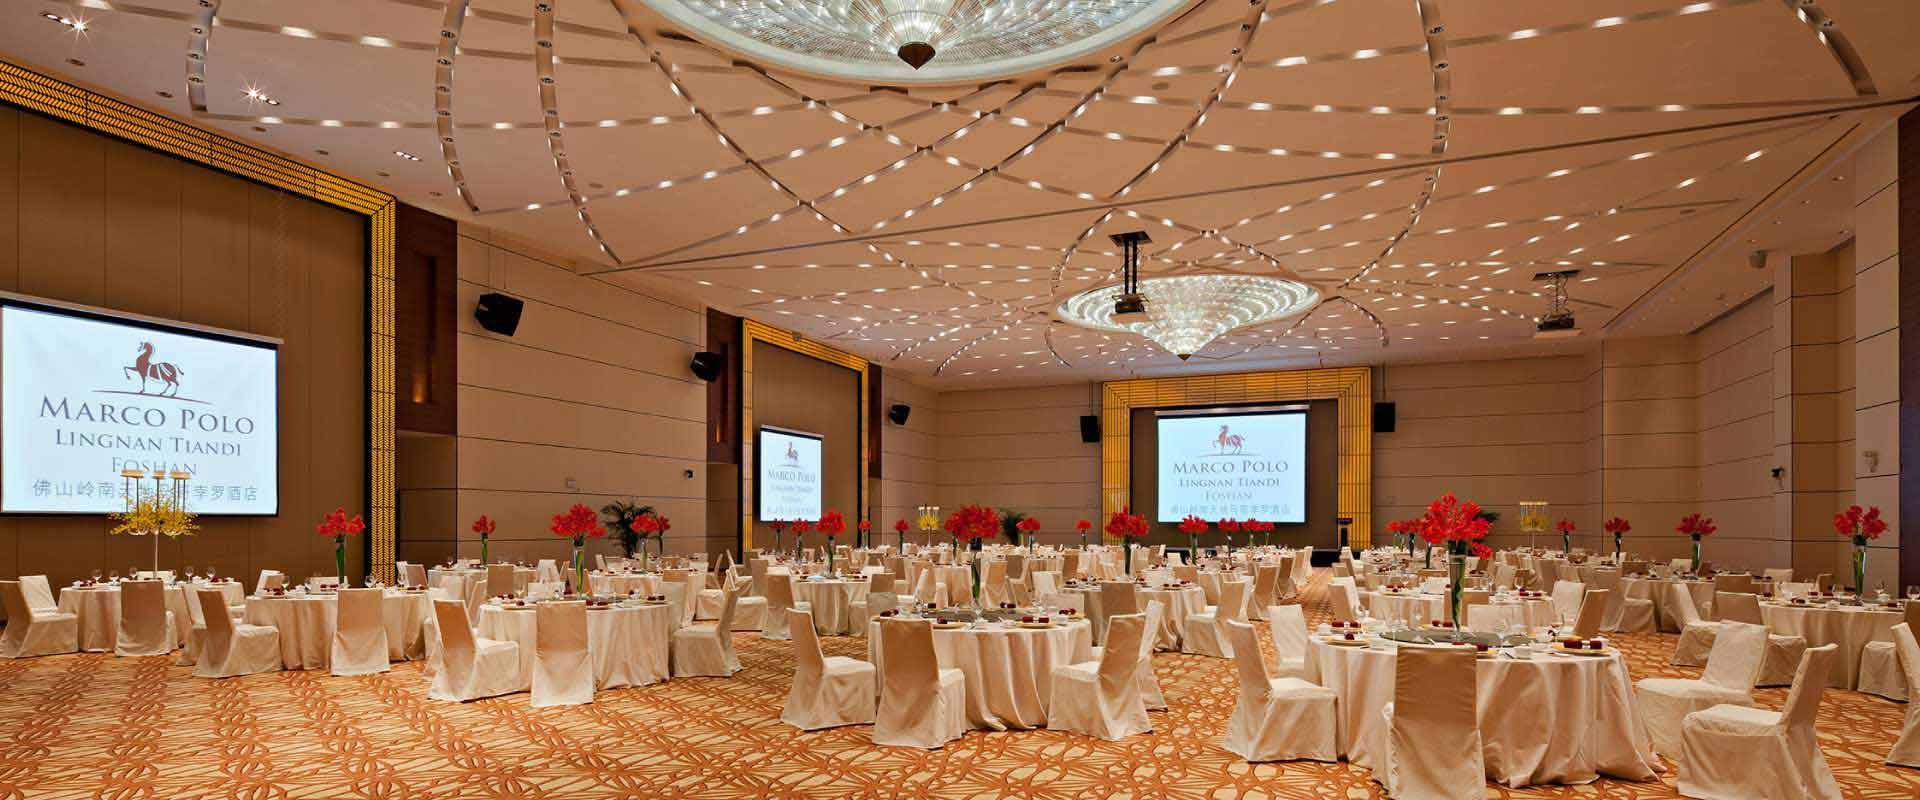 Ortigas Hotels With Function Rooms